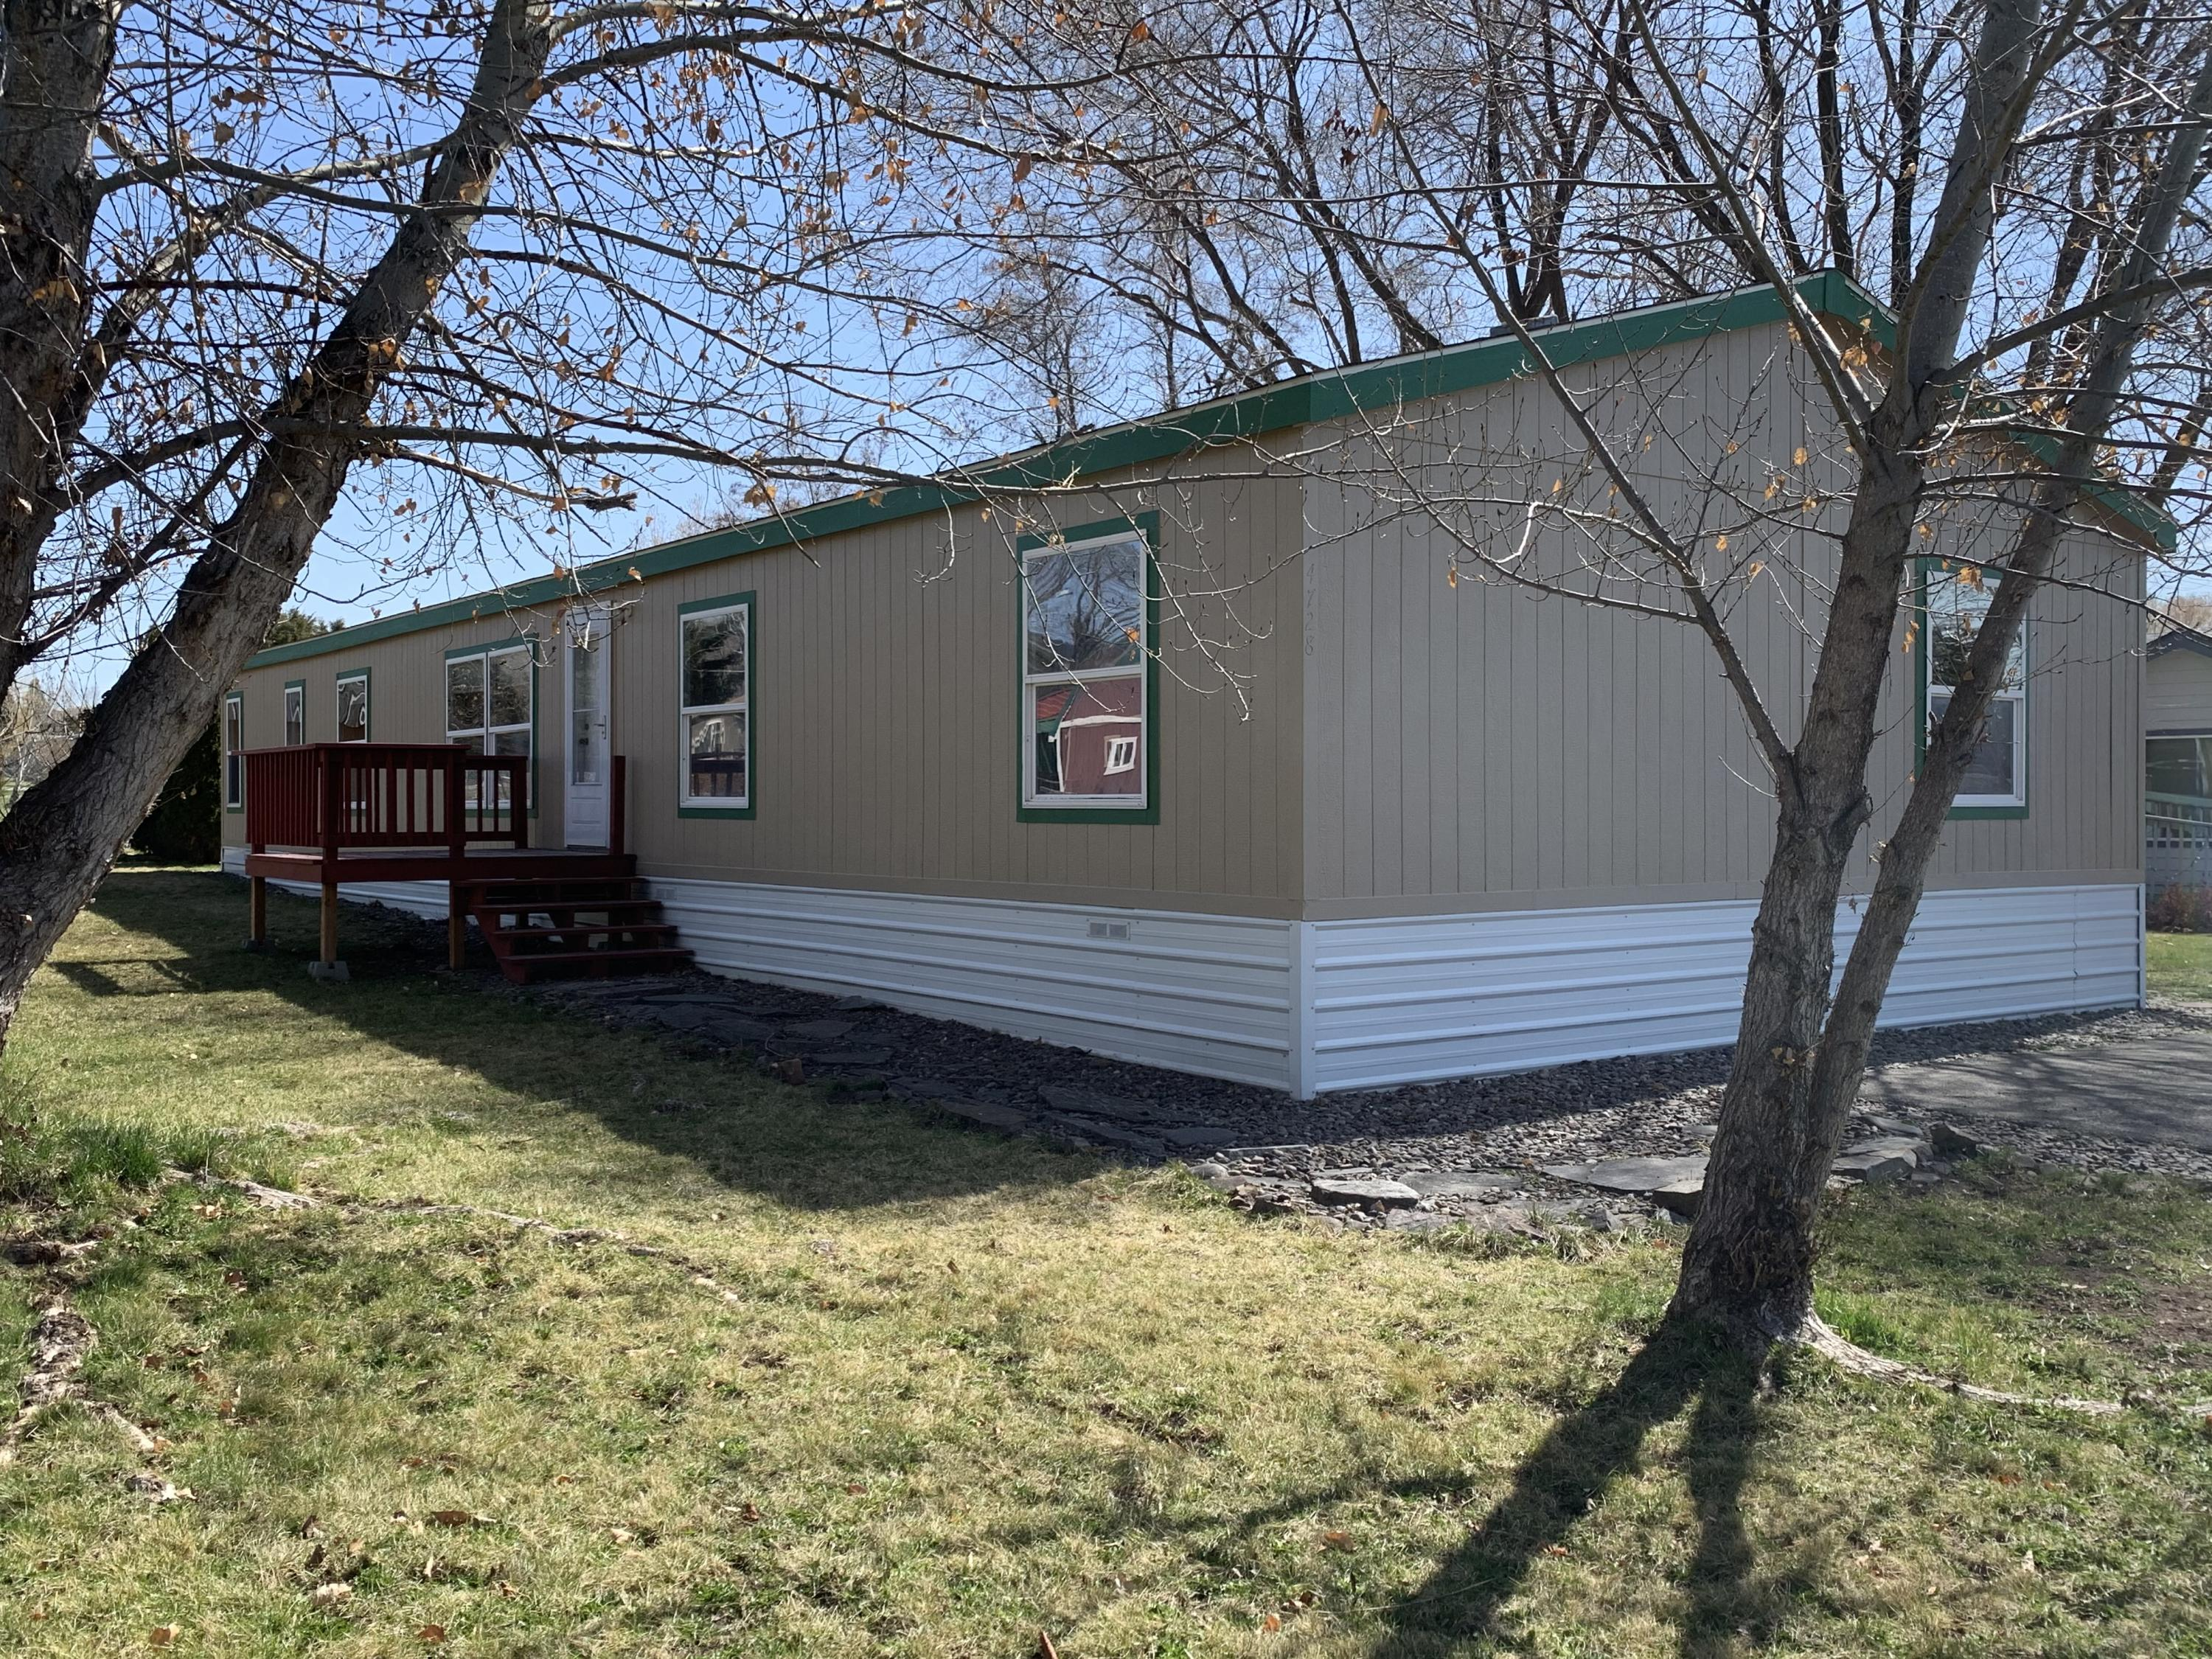 FINALLY an affordable home!!Very well-kept, updated manufactured home in Westview Park.  This extremely spacious 2,052 SF-4 bed 2 bath boasts lots of room to roam with an open concept layout. 3 of the 4 bedrooms have over-sized closets. The master bedroom has more room than you can imagine! Large walk-in closet and partially updated master bathroom. Entire exterior of the home has been finished with new paint. A shed on the property allows extra room to store necessary items. This home is completely turnkey with lots of upgrades. Home is on a leased lot-$450/month, includes water, sewer and trash.Buyer must apply and be approved with Westview Park Management to purchase home.Call or text Erika Bears 406.529.8496 or your real estate professional today for a showing